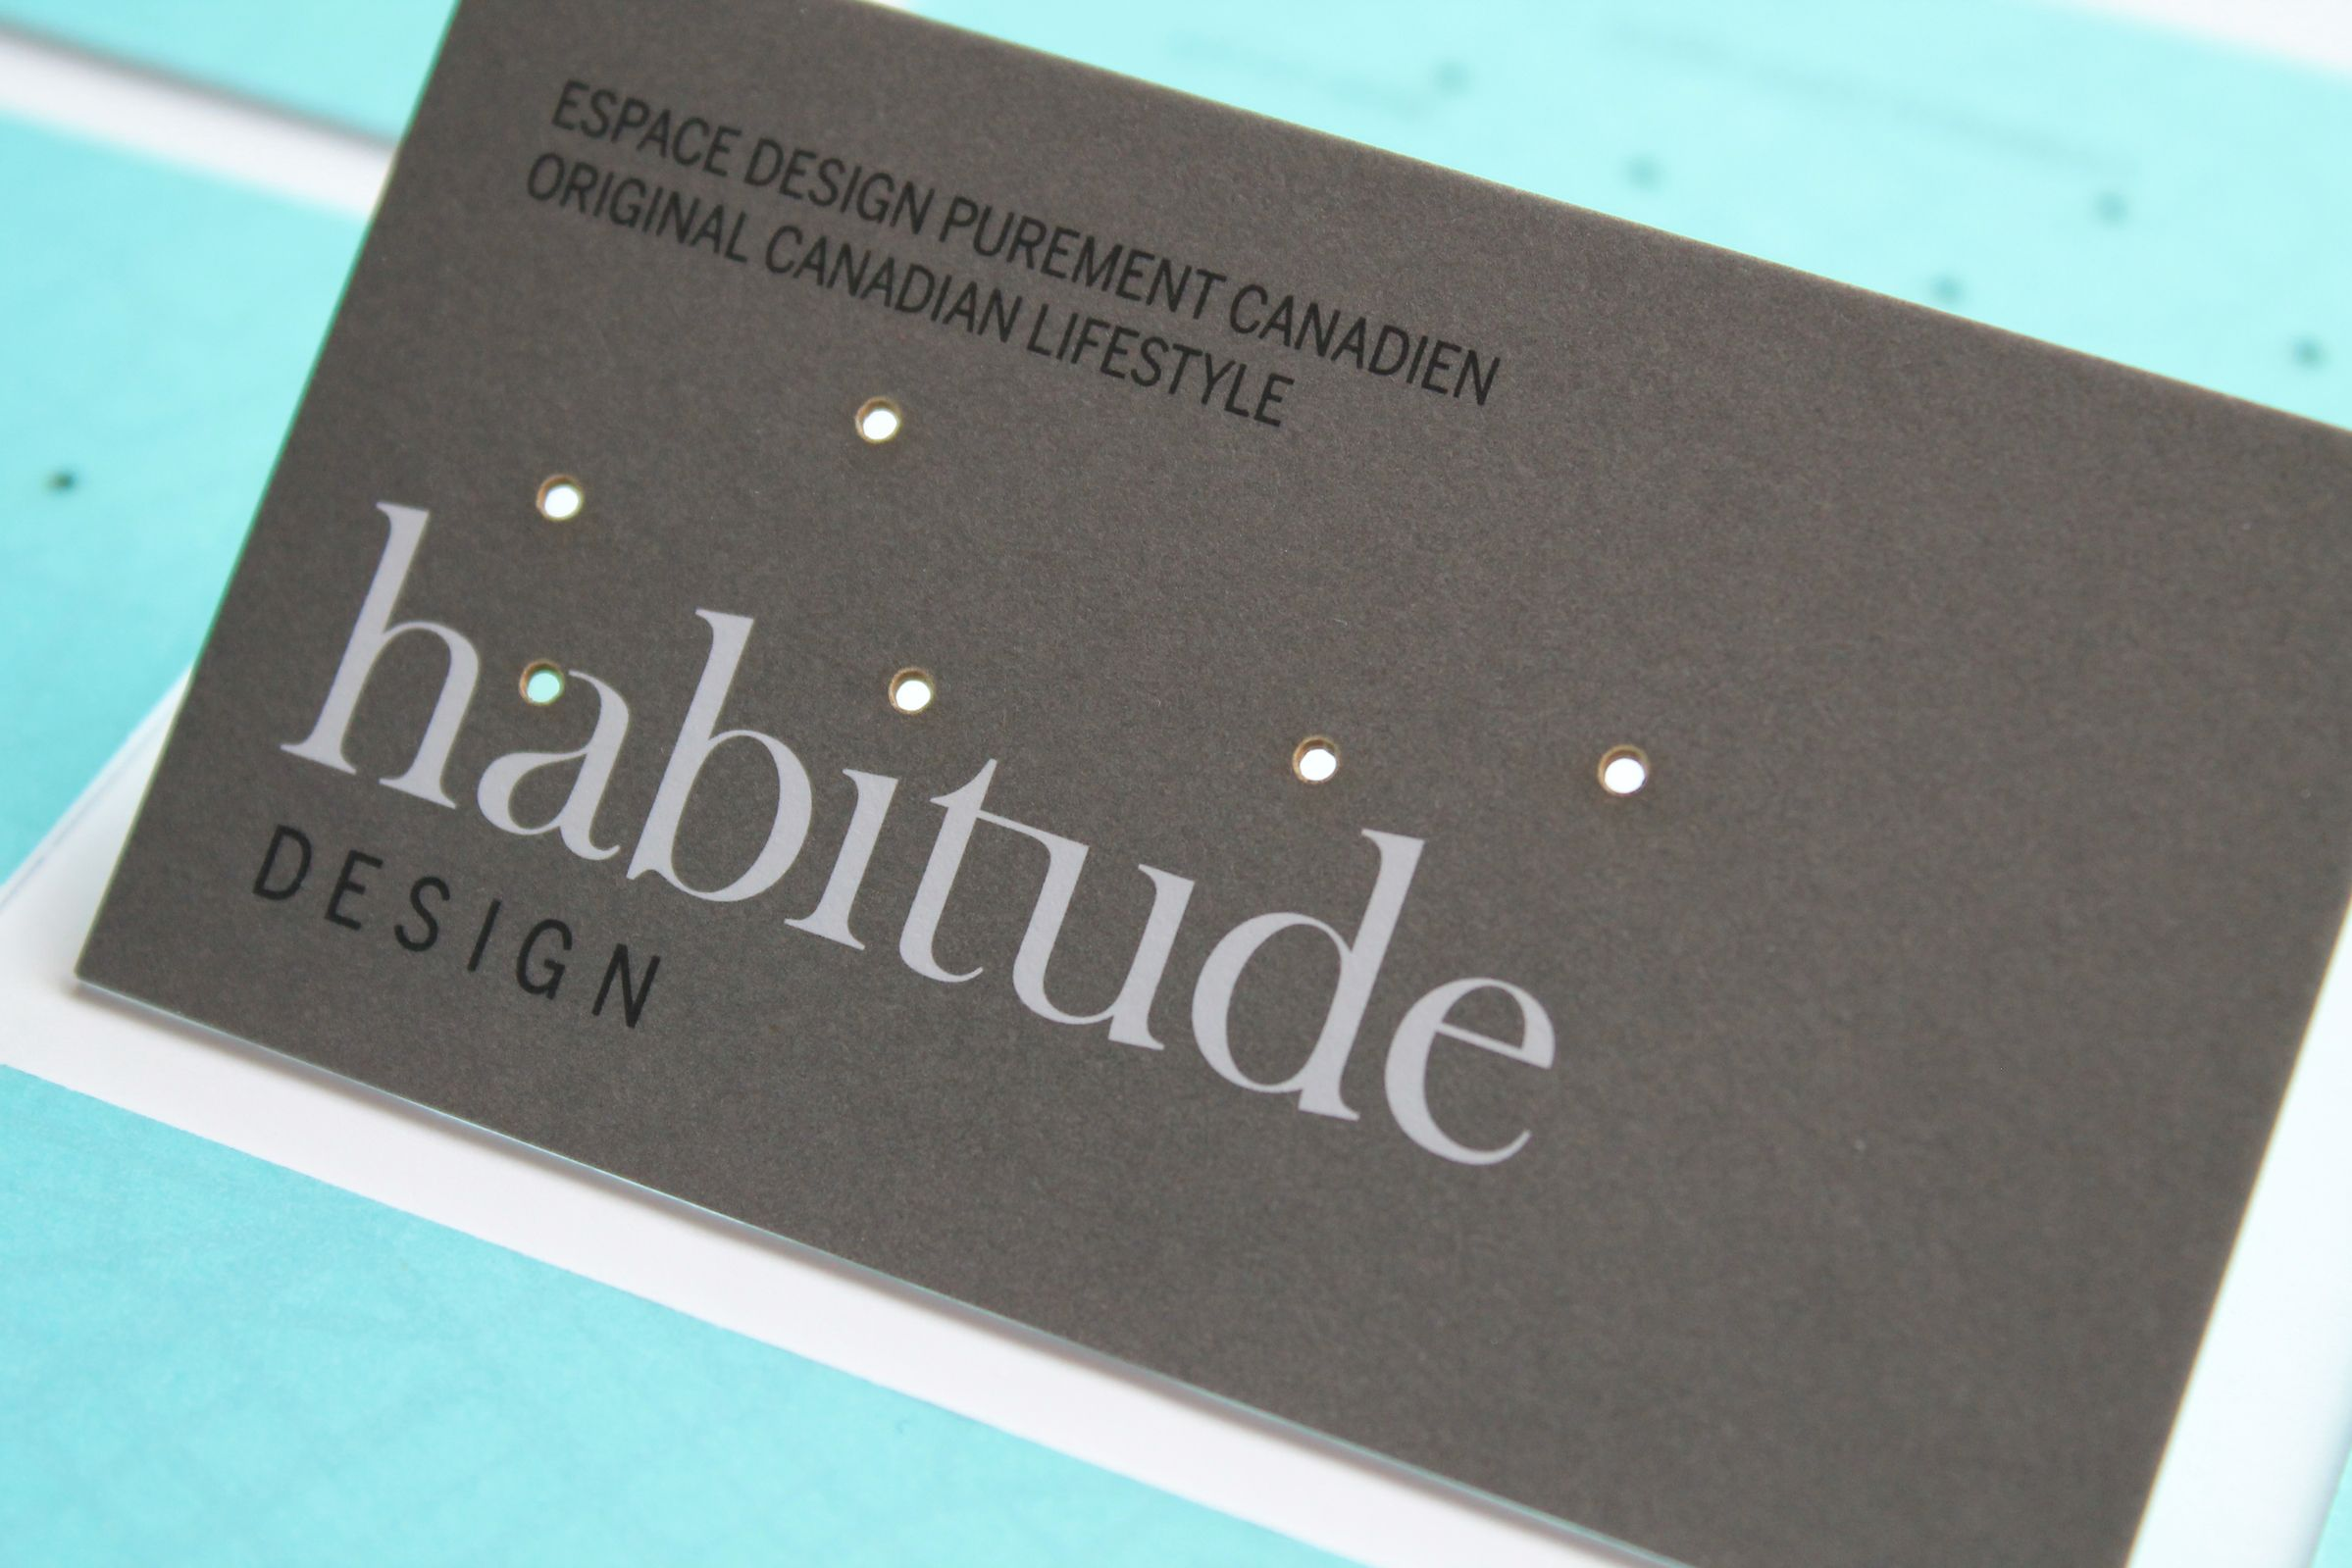 Laser Cut Business Card for Habitude, a Québec lifestyle and product company by Ottawa Graphic Designer idApostle